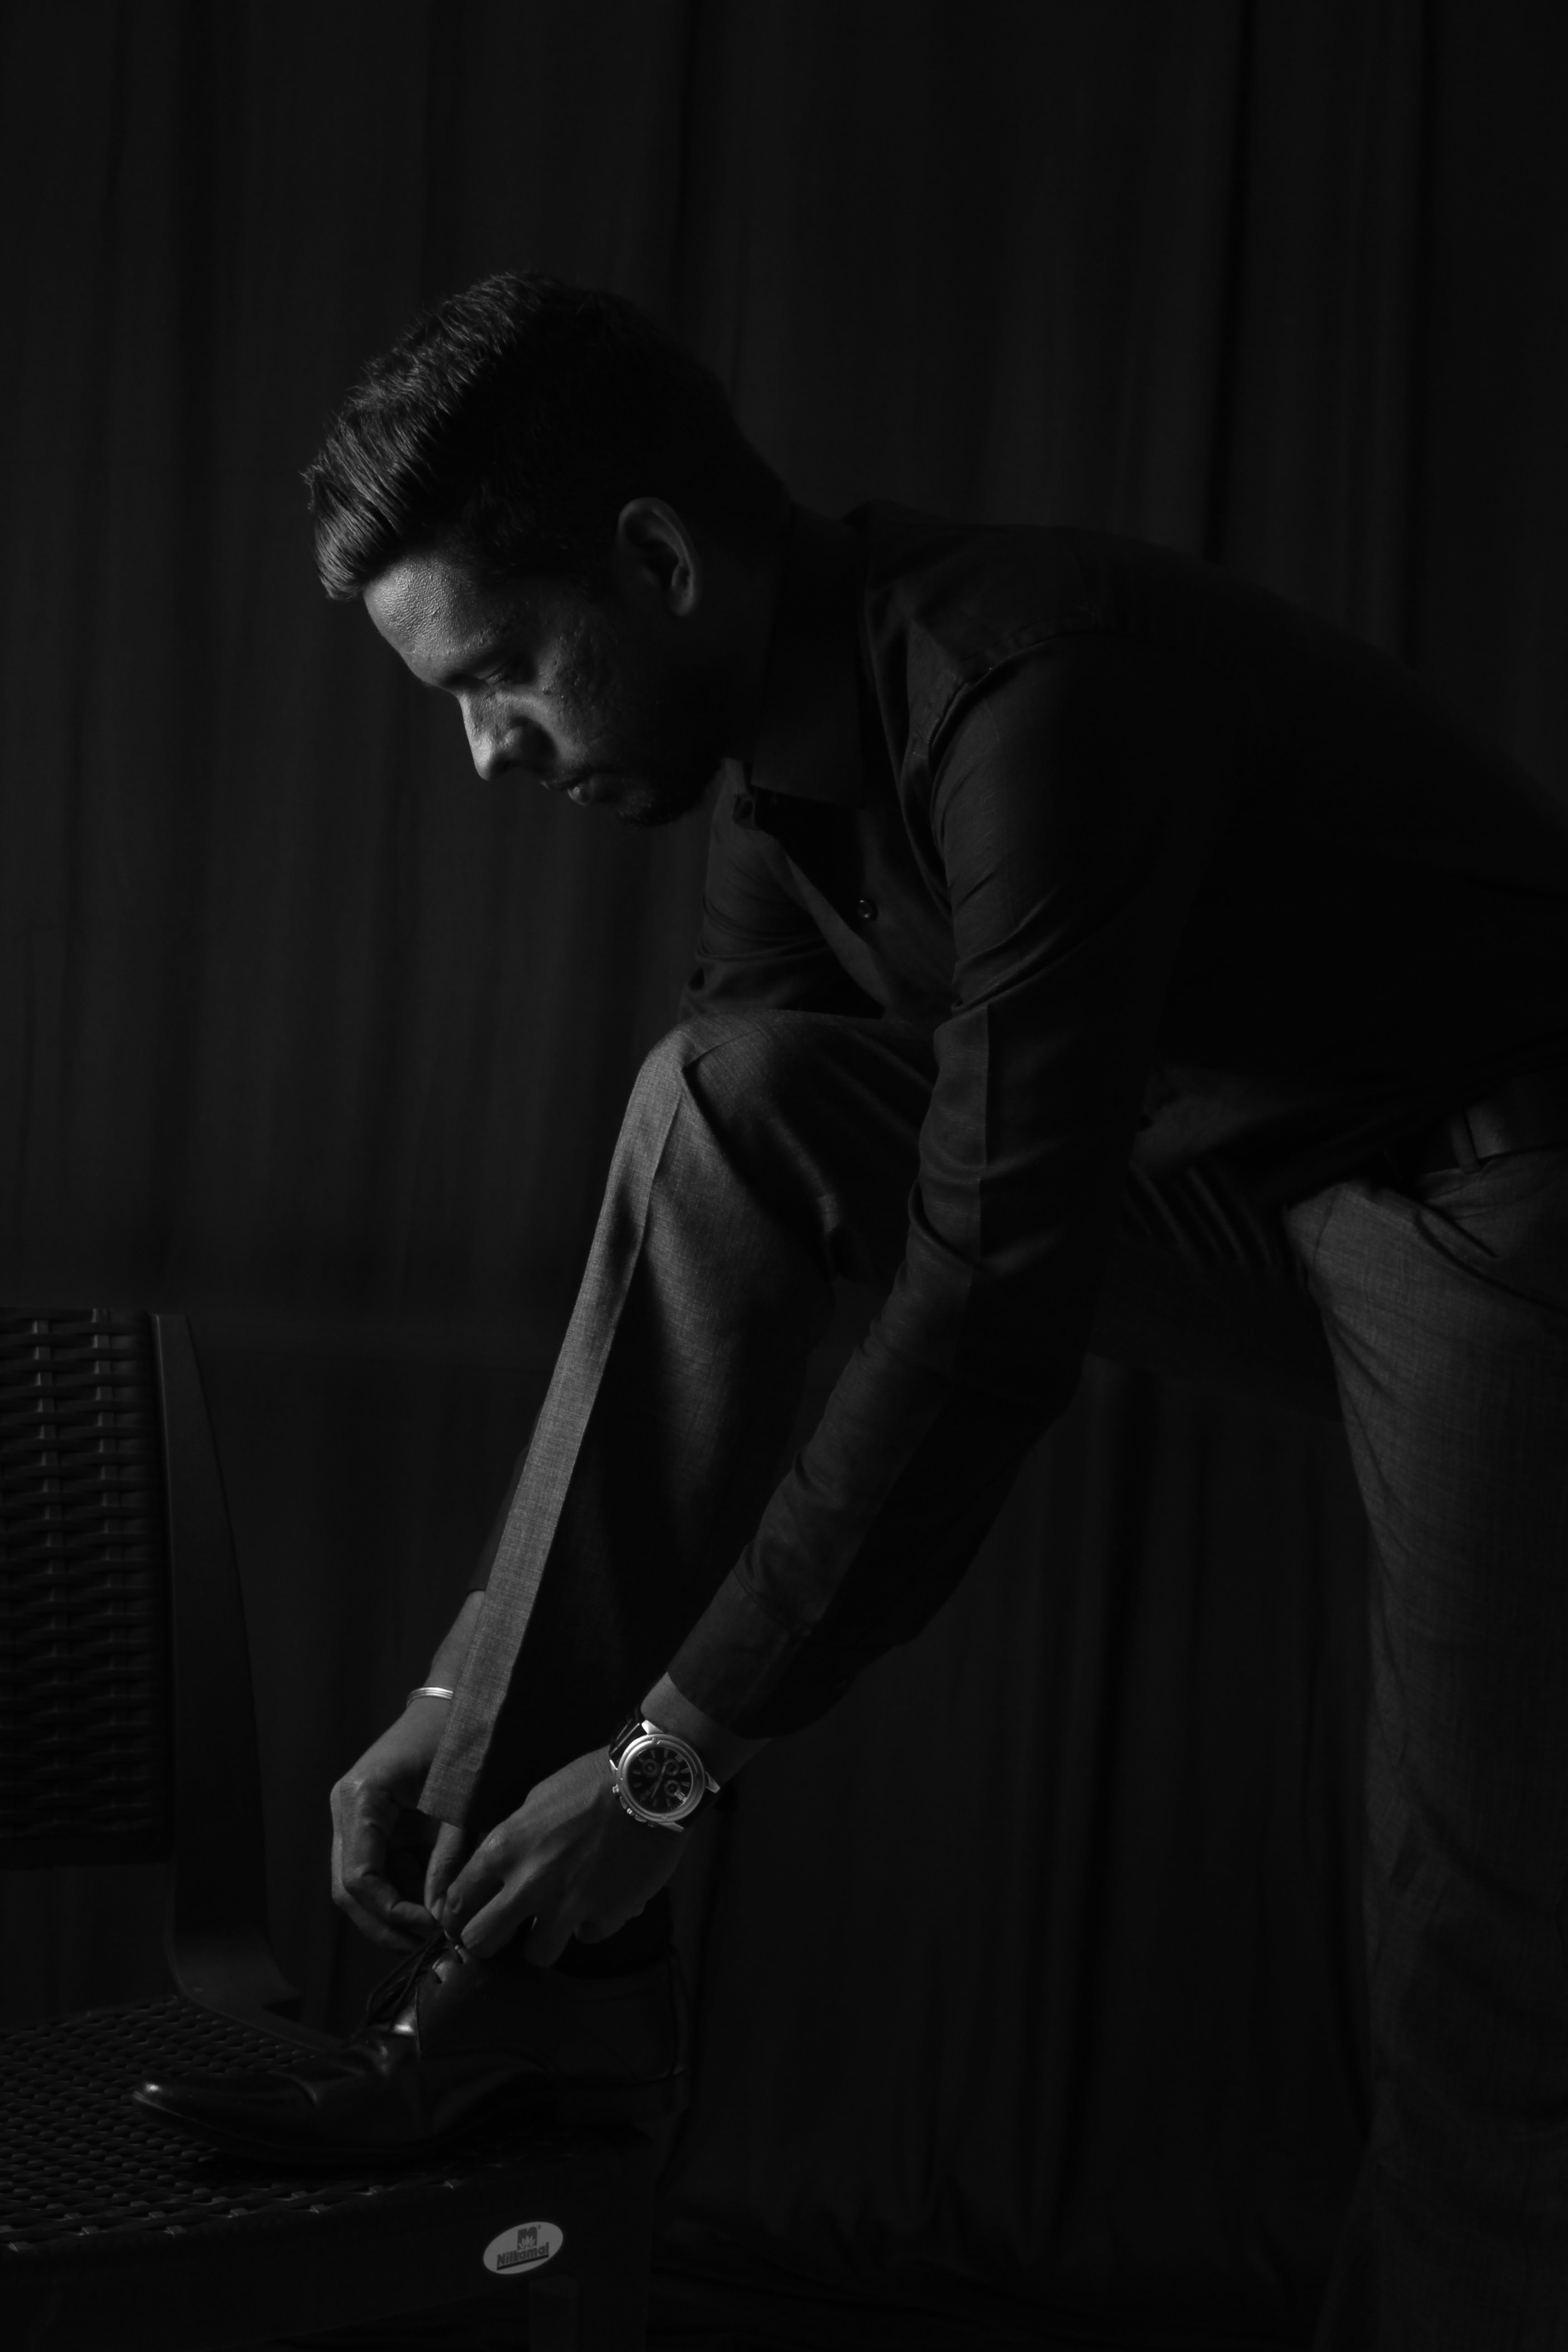 Grayscale Photo of Man in Dress Shirt and Pants Tying His Shoelaces